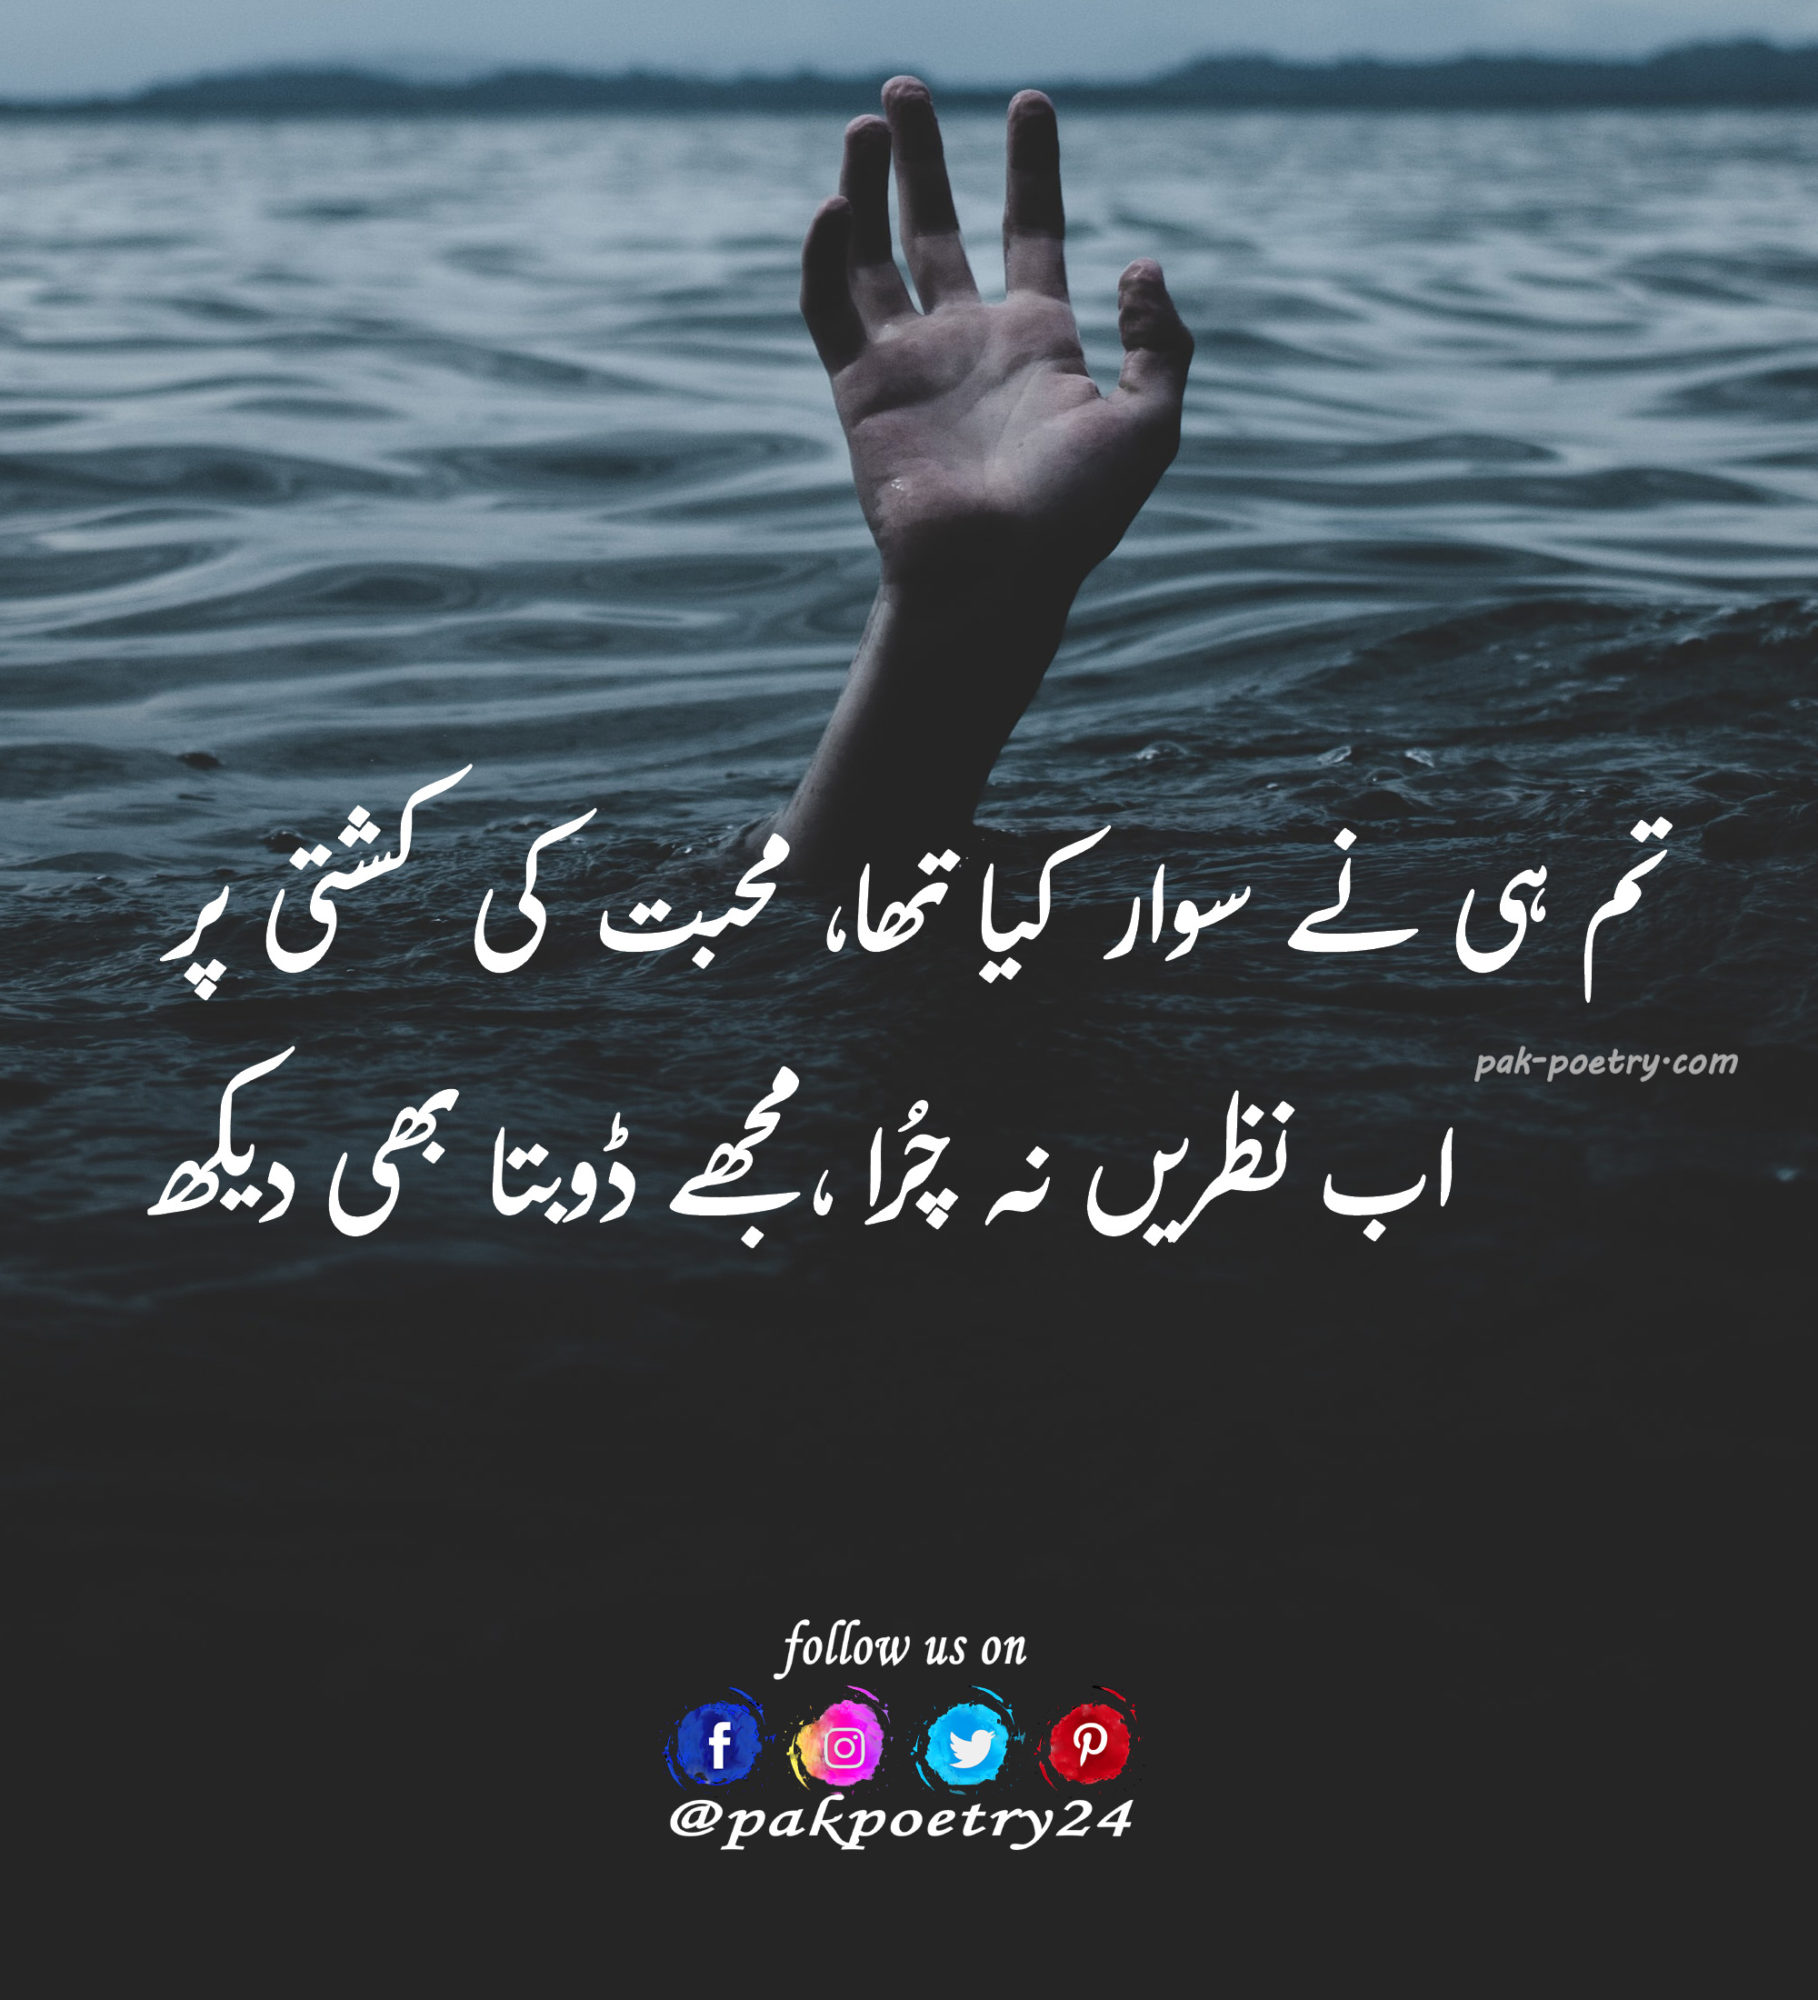 Sad poetry, sad poetry in urdu, poetry sad, sad poetry urdu, urdu sad poetry, sad poetry pics, poetry in urdu sad, Poetry in urdu, urdu poetry, poetry urdu,